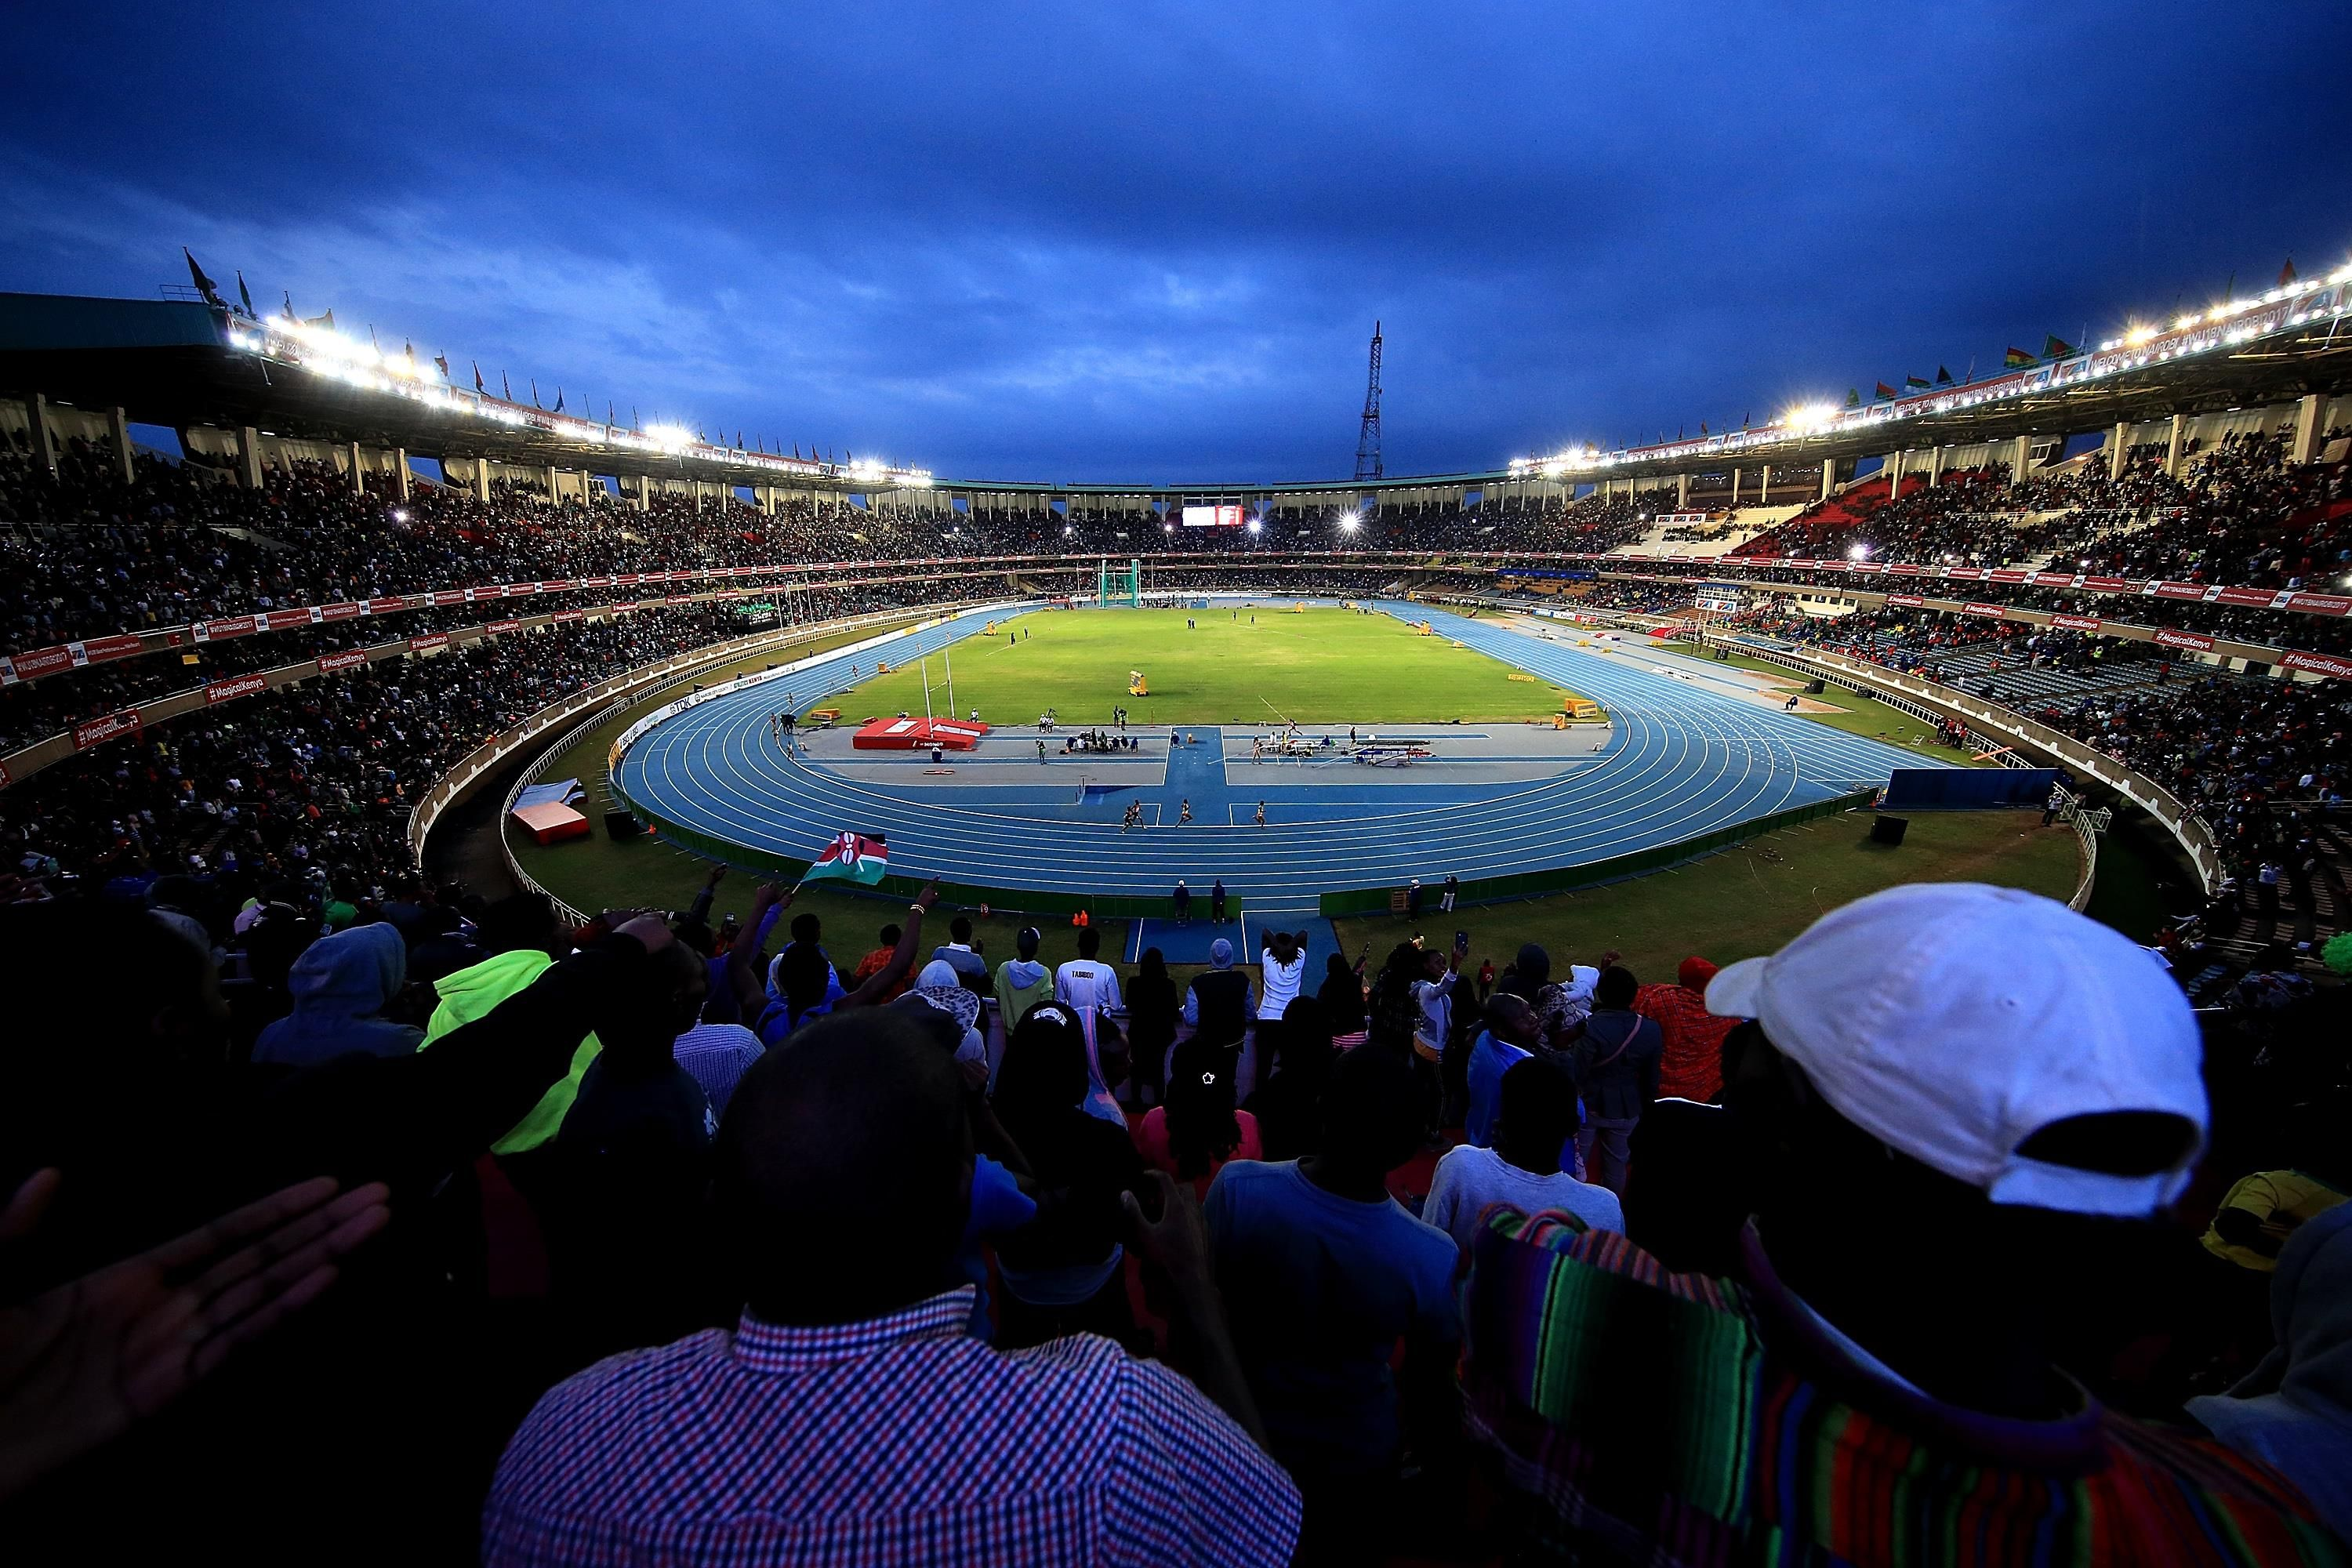 It is with regret that World Athletics, together with the Government of Kenya and Athletics Kenya, have made the decision to postpone the World Athletics U20 Championships Nairobi 2020 (7-12 July), due to the ongoing challenges posed by the spread of the novel coronavirus (COVID-19) internationally.